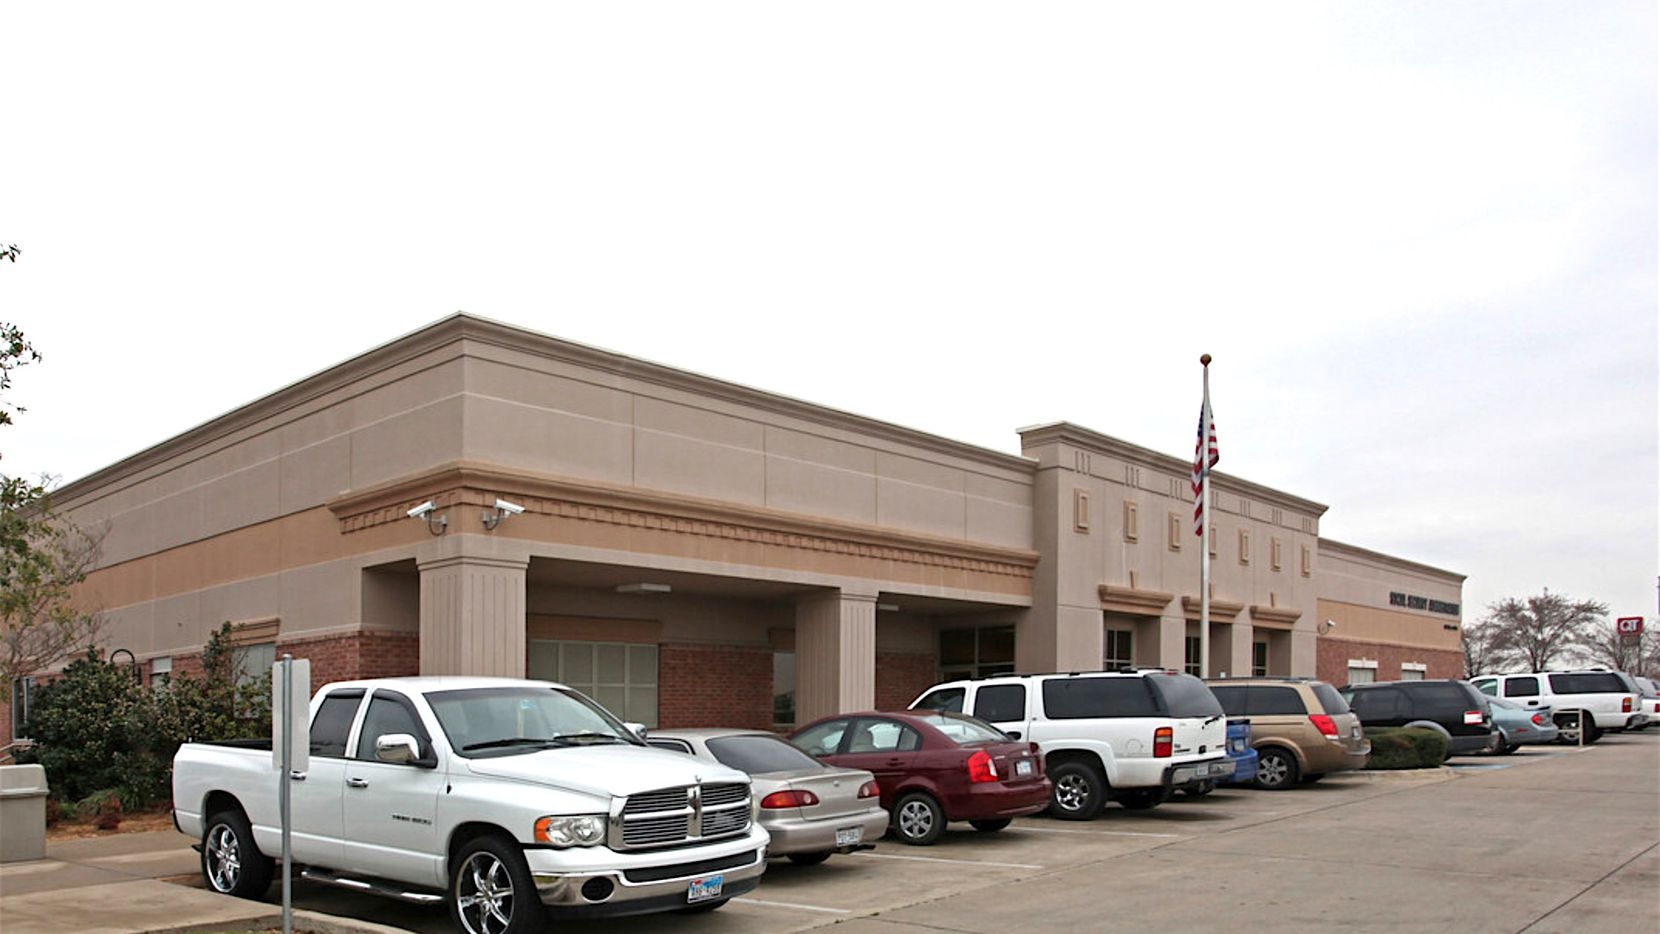 The Social Security office in Balch Springs was part of the sale.